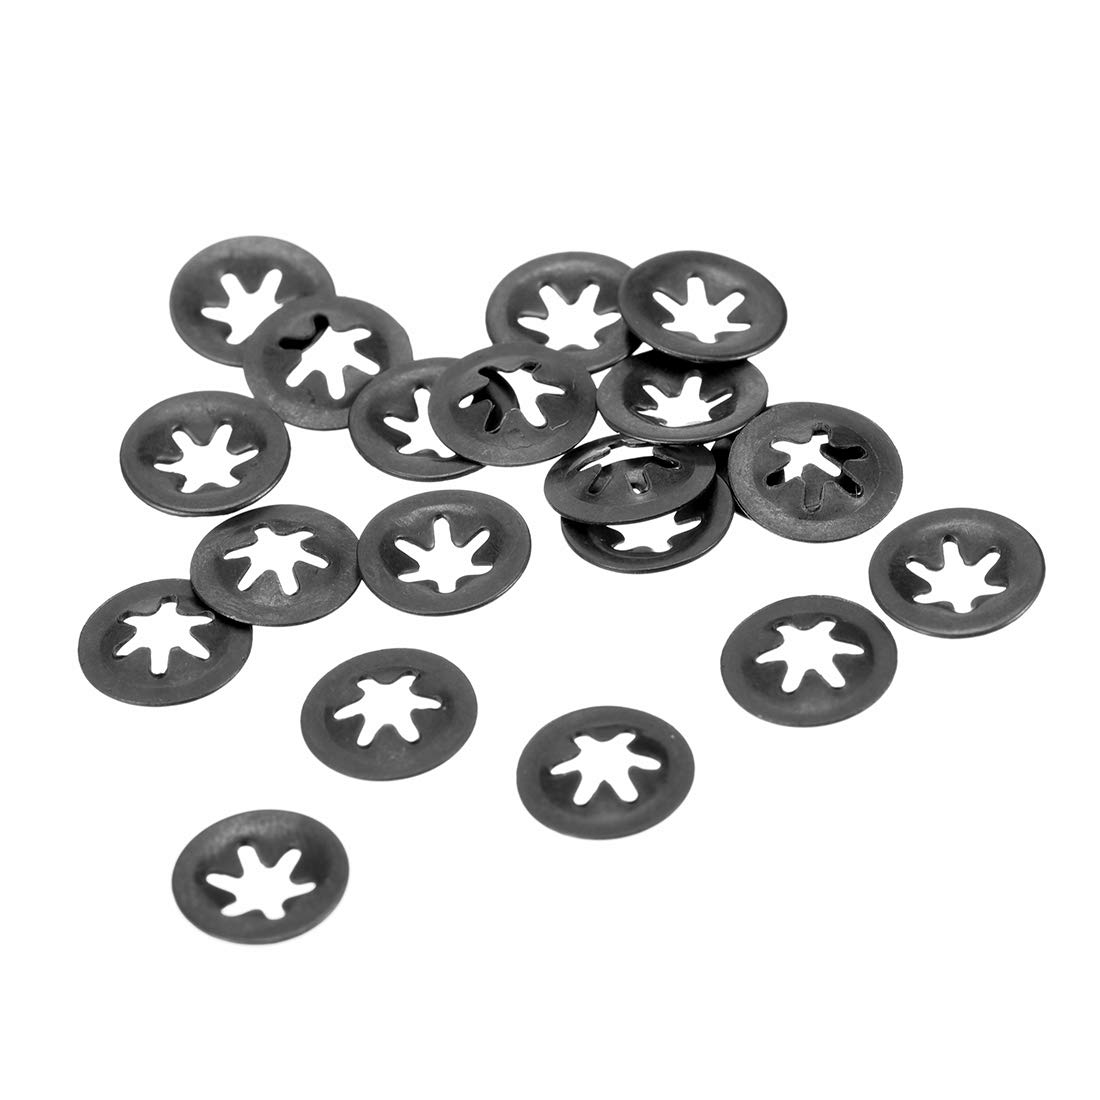 uxcell M3 Star Ranking TOP16 Locking Washer 2.5mm I.D. Tooth Internal O.D. New sales 9mm